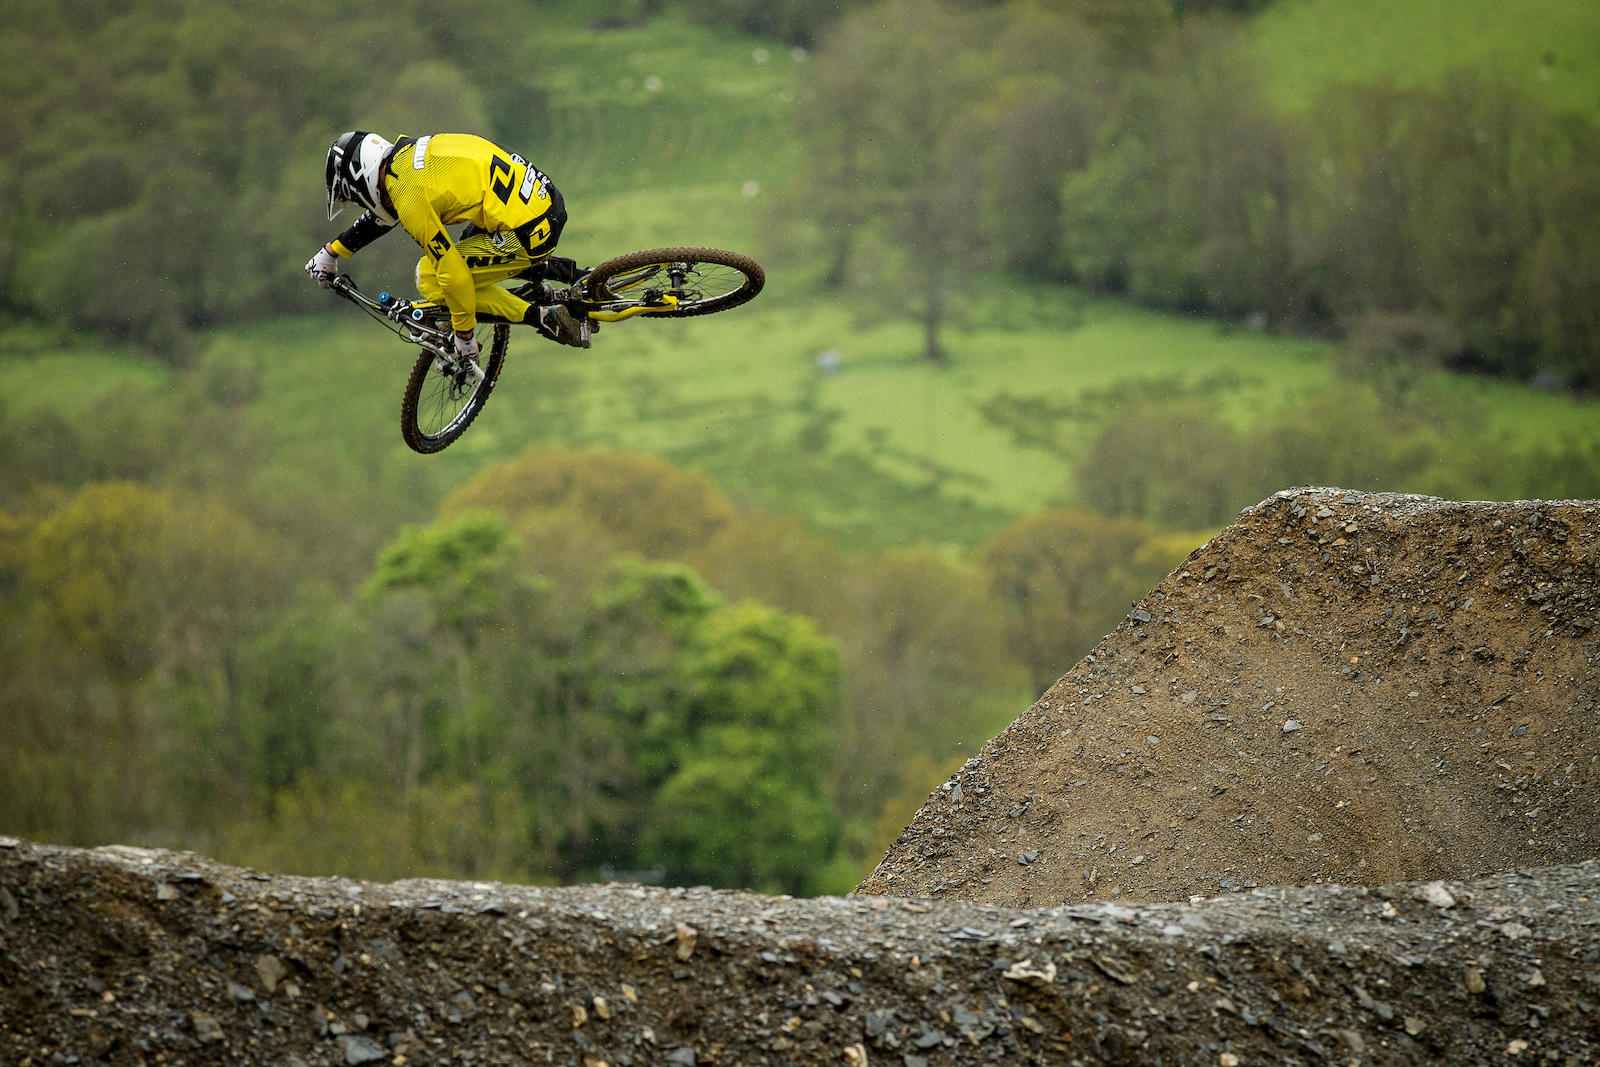 Atherton Racing 2013. Wales. UK